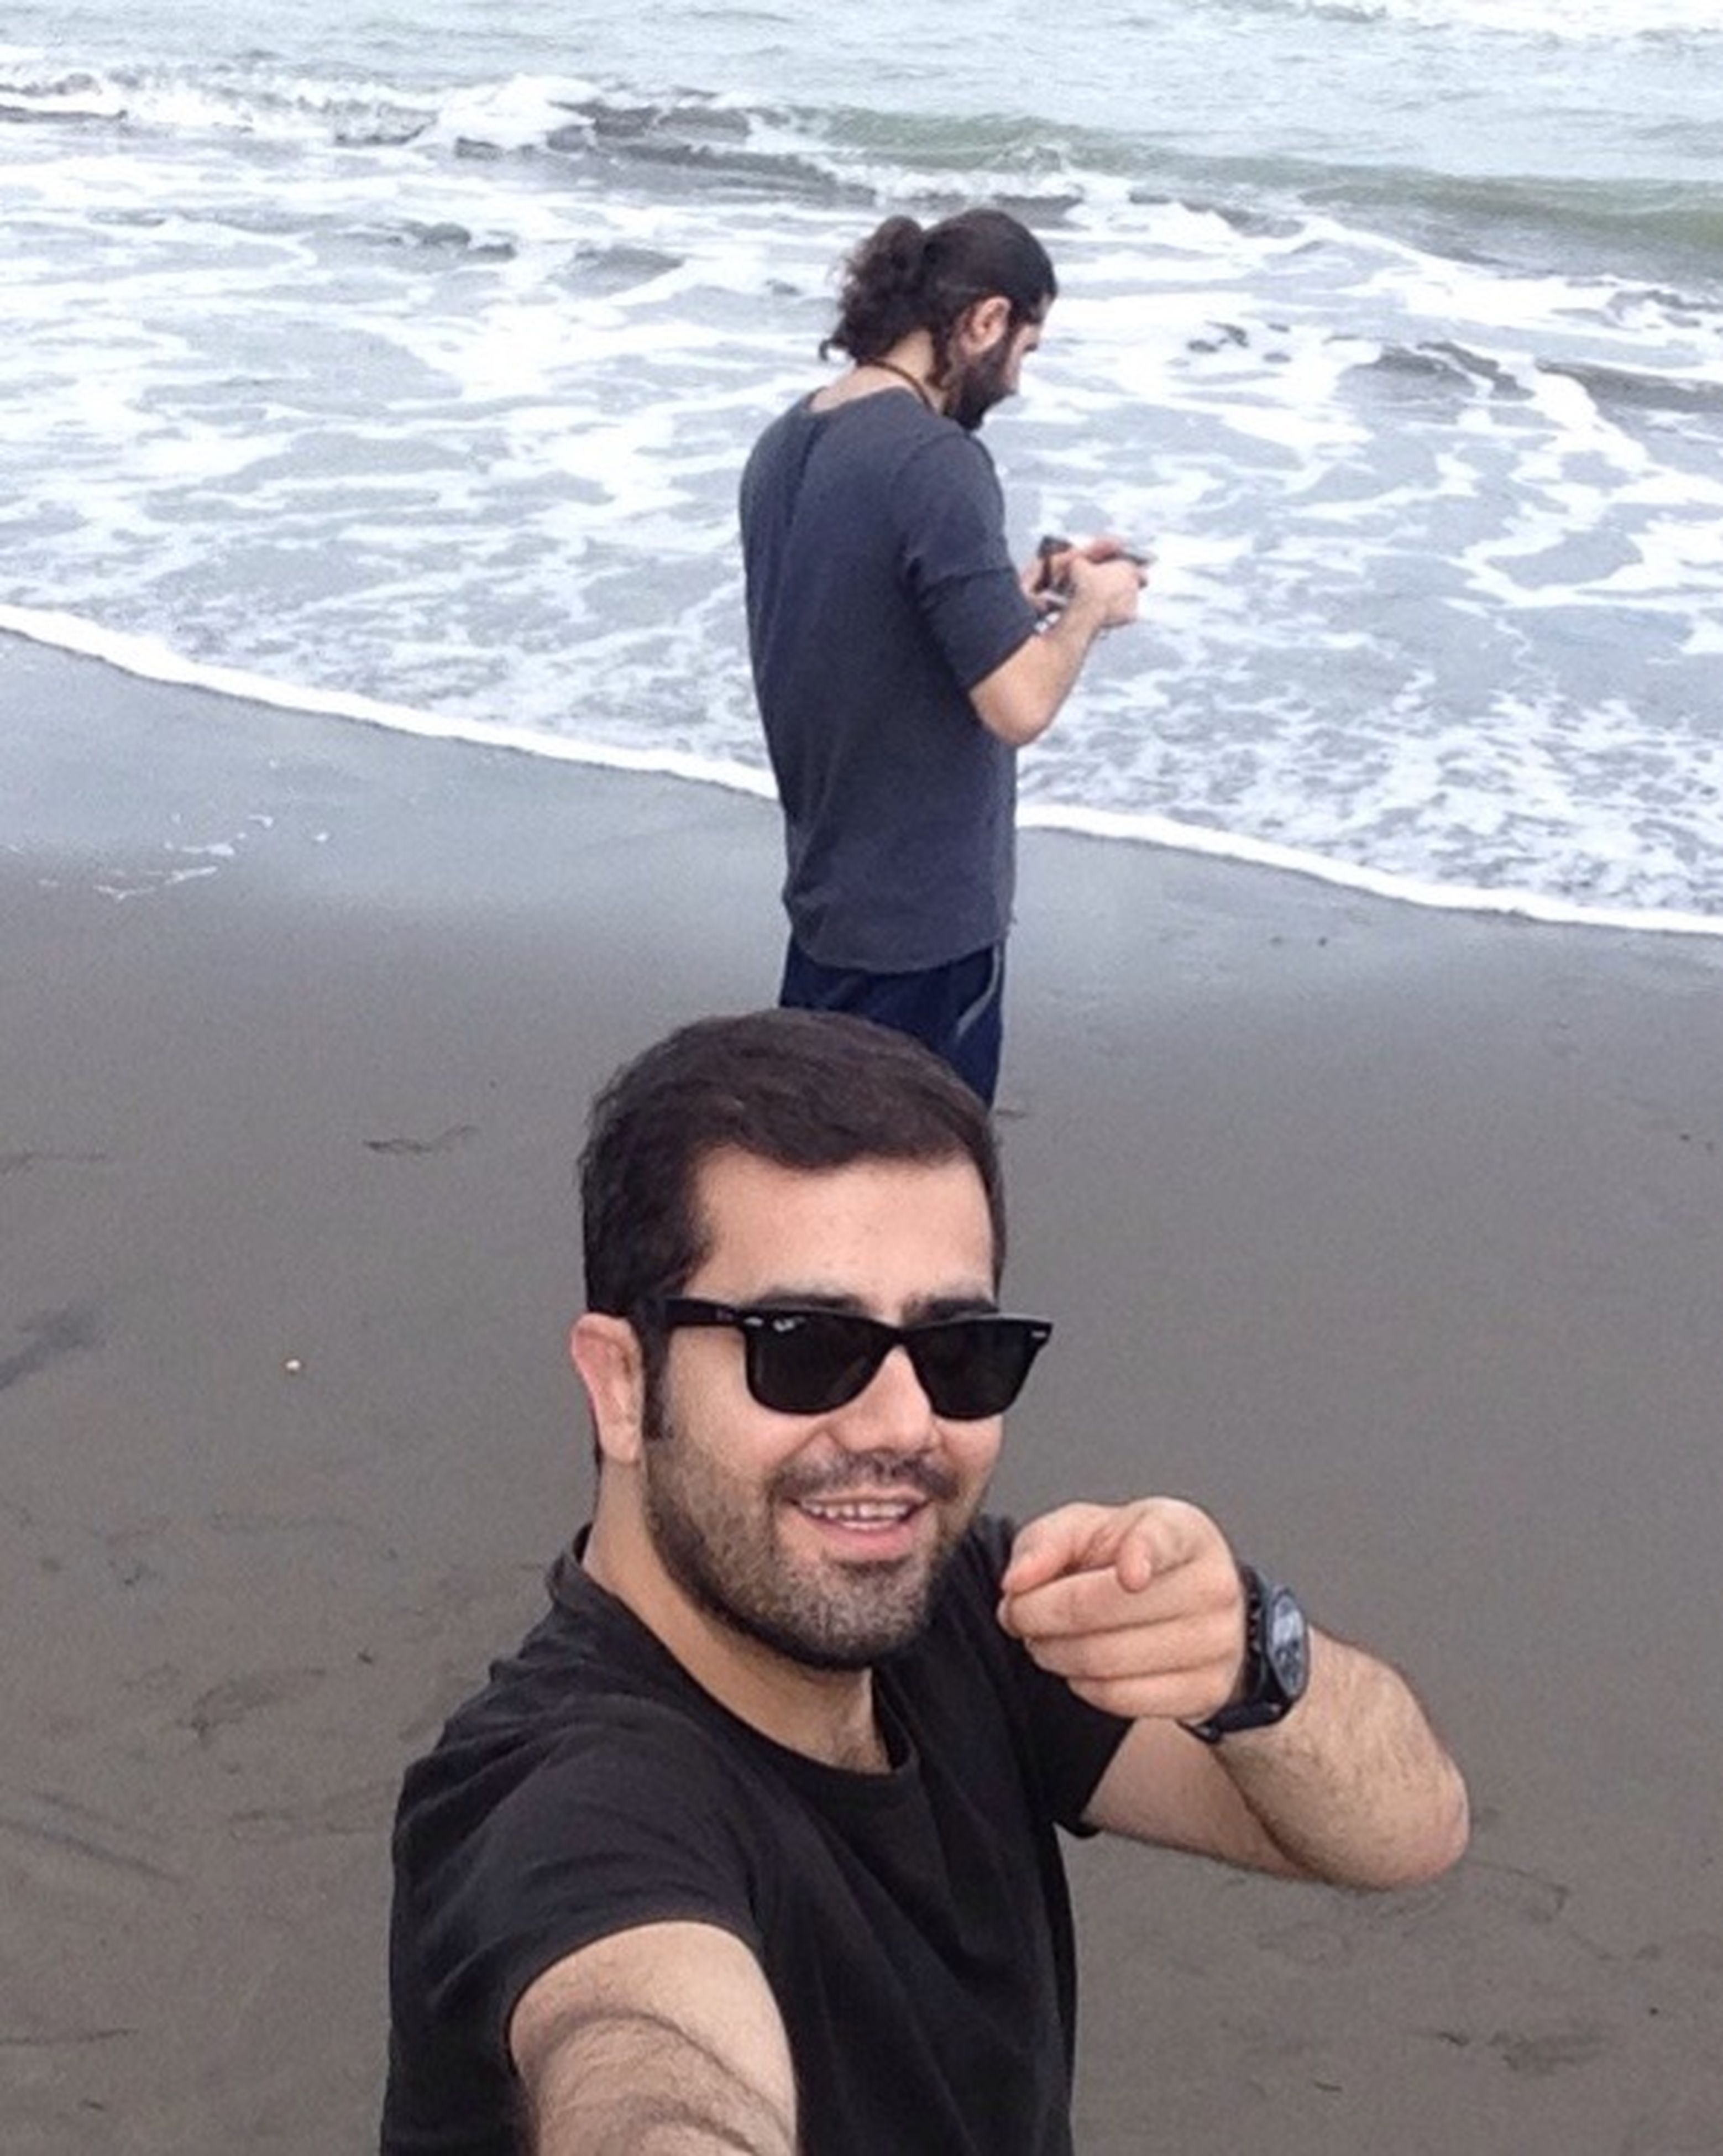 only men, sunglasses, two people, adults only, handsome, beard, wireless technology, men, smart phone, portrait, selfie, portable information device, adult, stubble, young adult, beautiful people, lifestyles, technology, sea, people, communication, togetherness, happiness, cheerful, real people, beach, water, friendship, smiling, outdoors, day